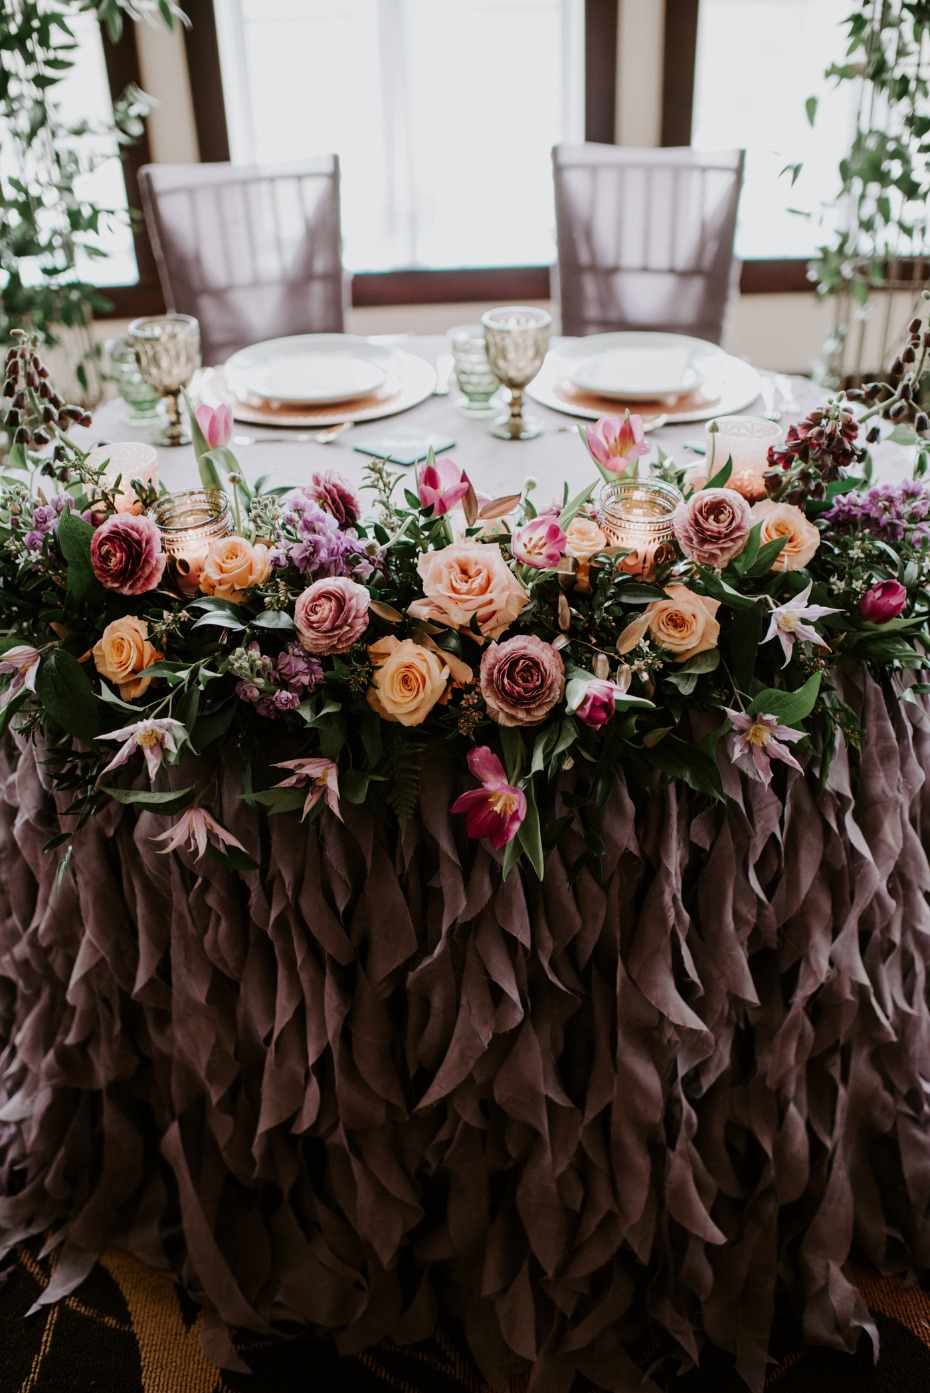 Sweetheart table with florals and ruffles